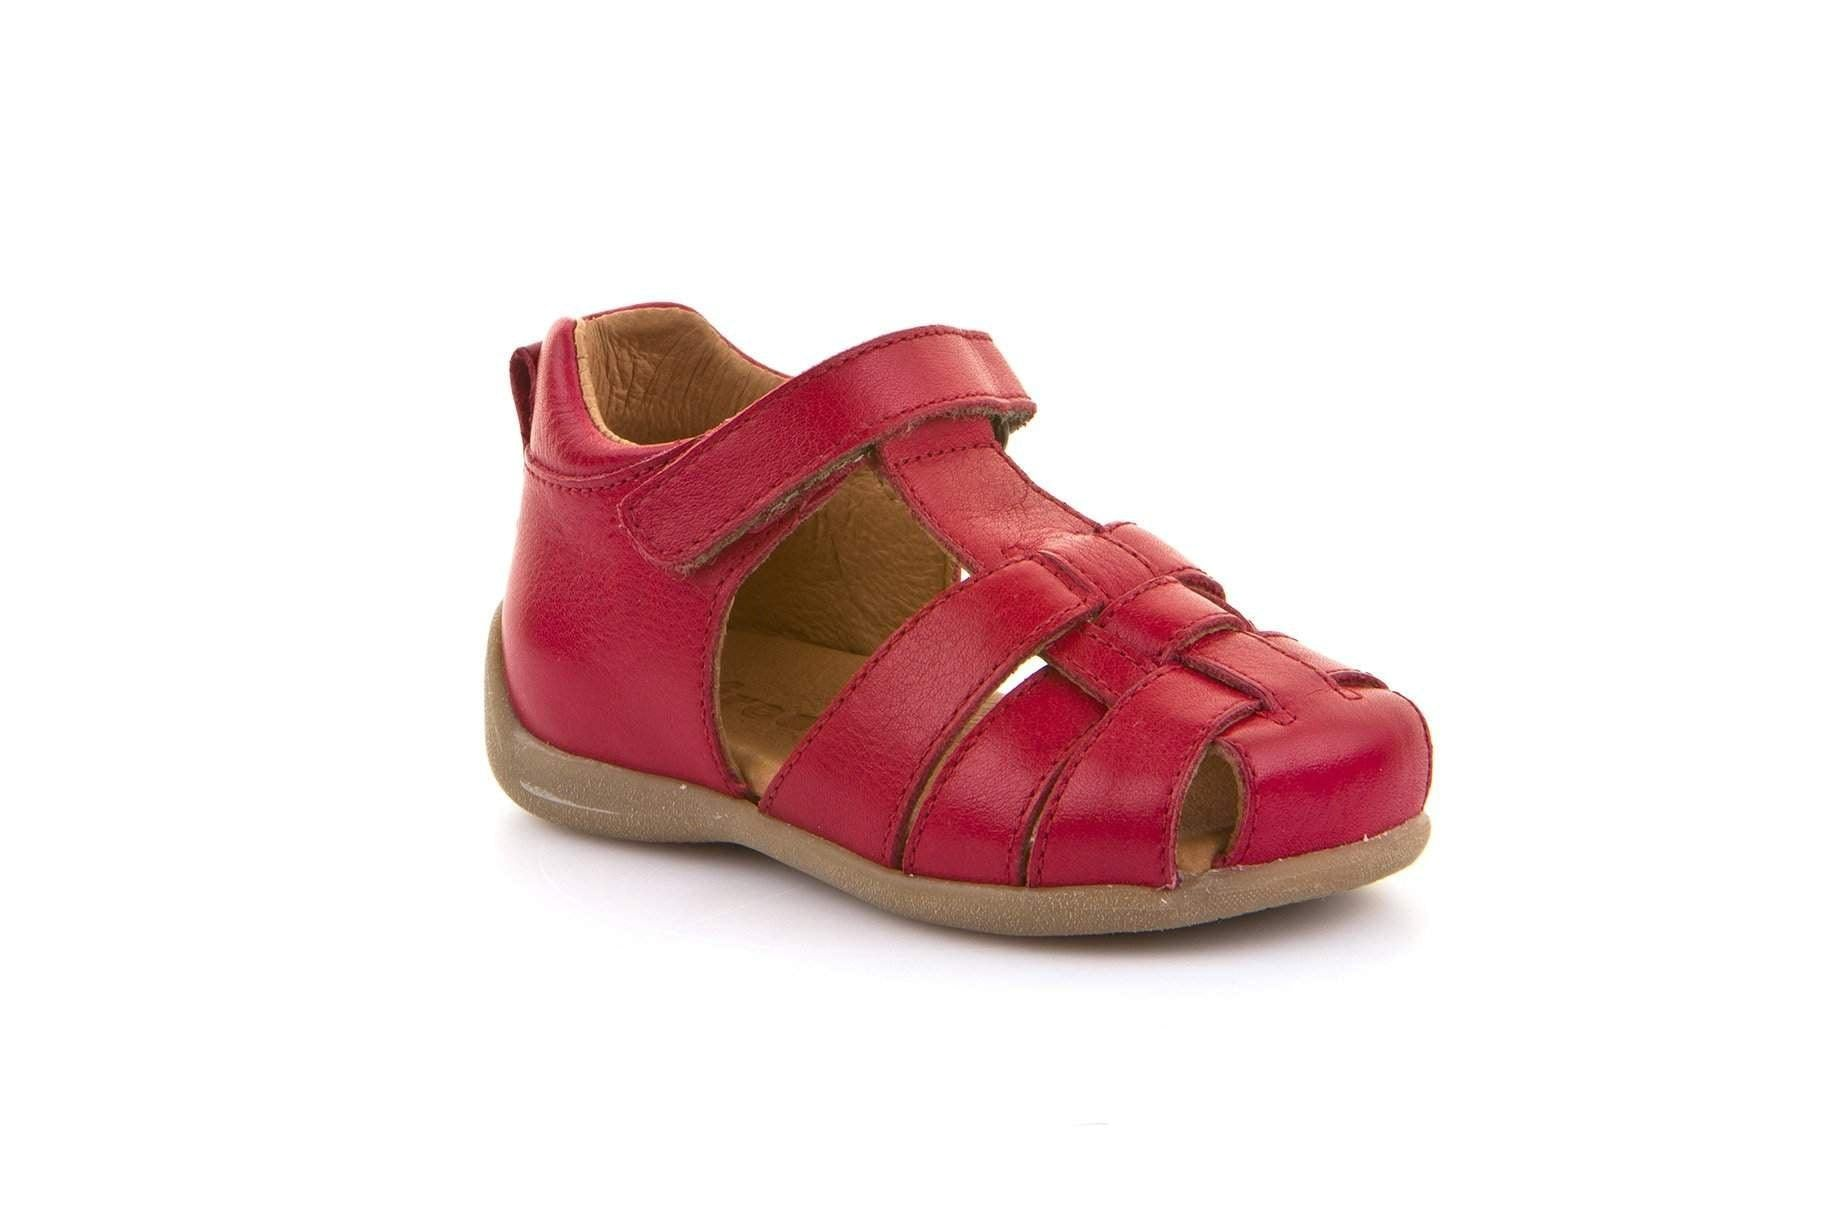 Froddo/G2150093-4/Red/Girls  Leather Sandals /Toddler - ShoeKid.ca